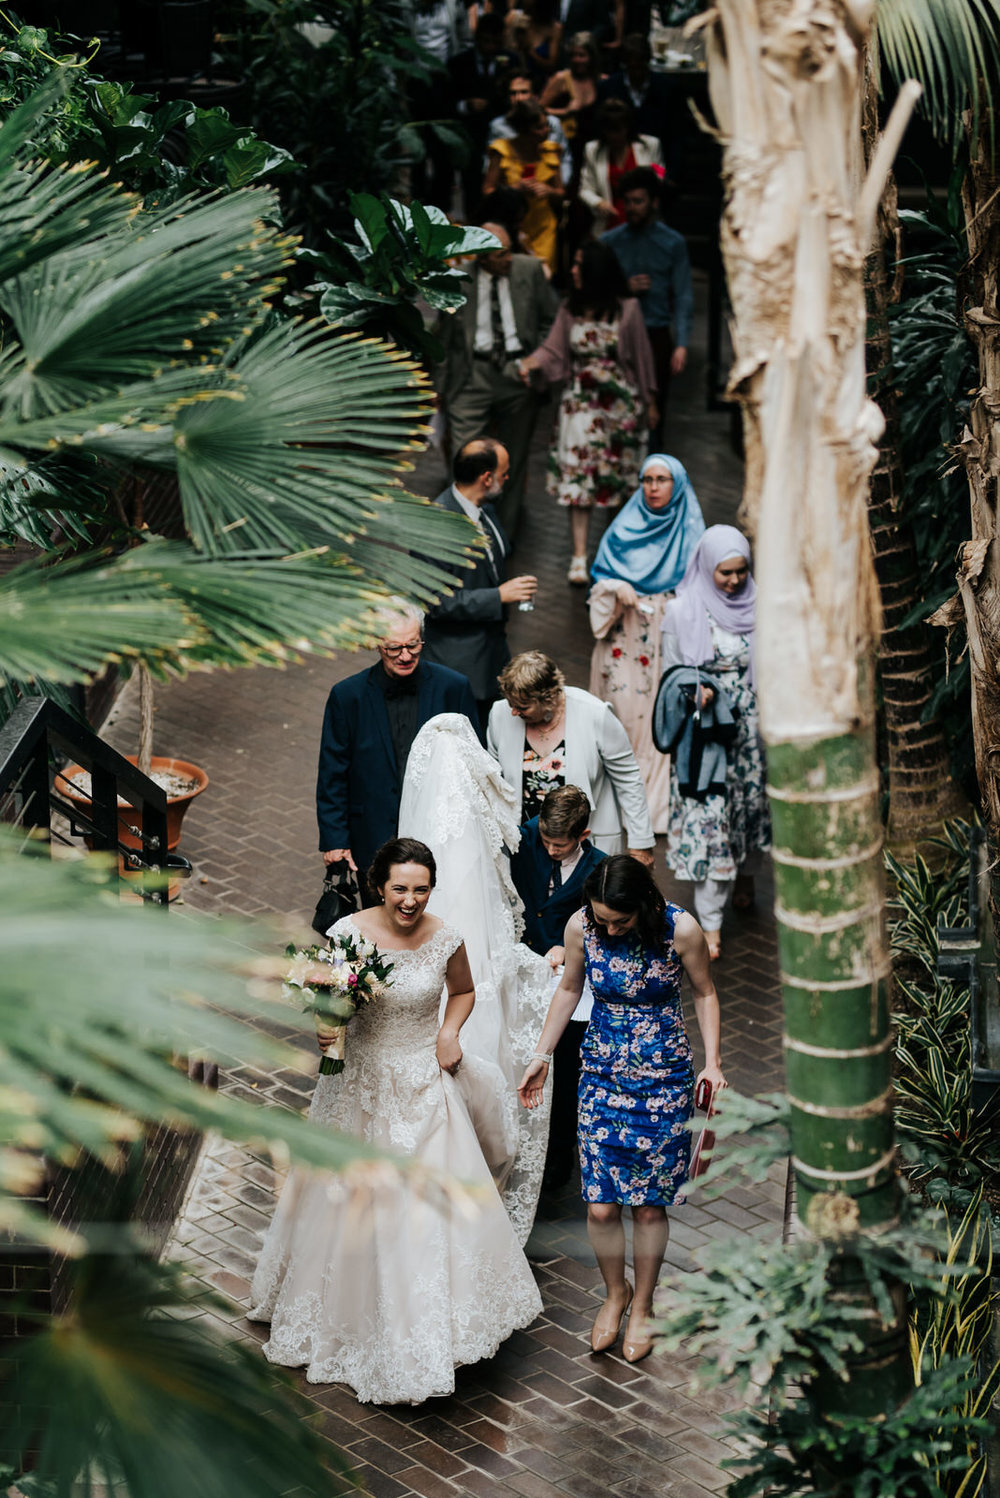 Wide photograph from above of bride leading guests to wedding re